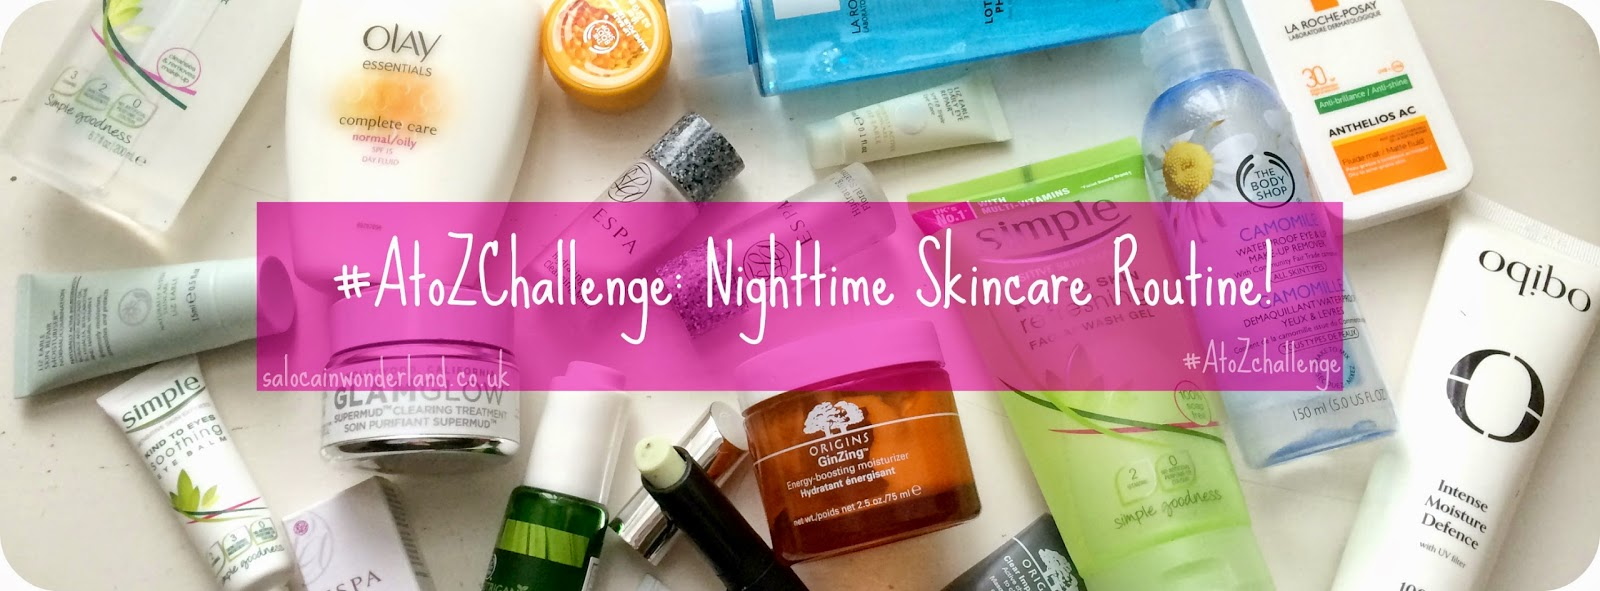 nighttime skincare routine tips